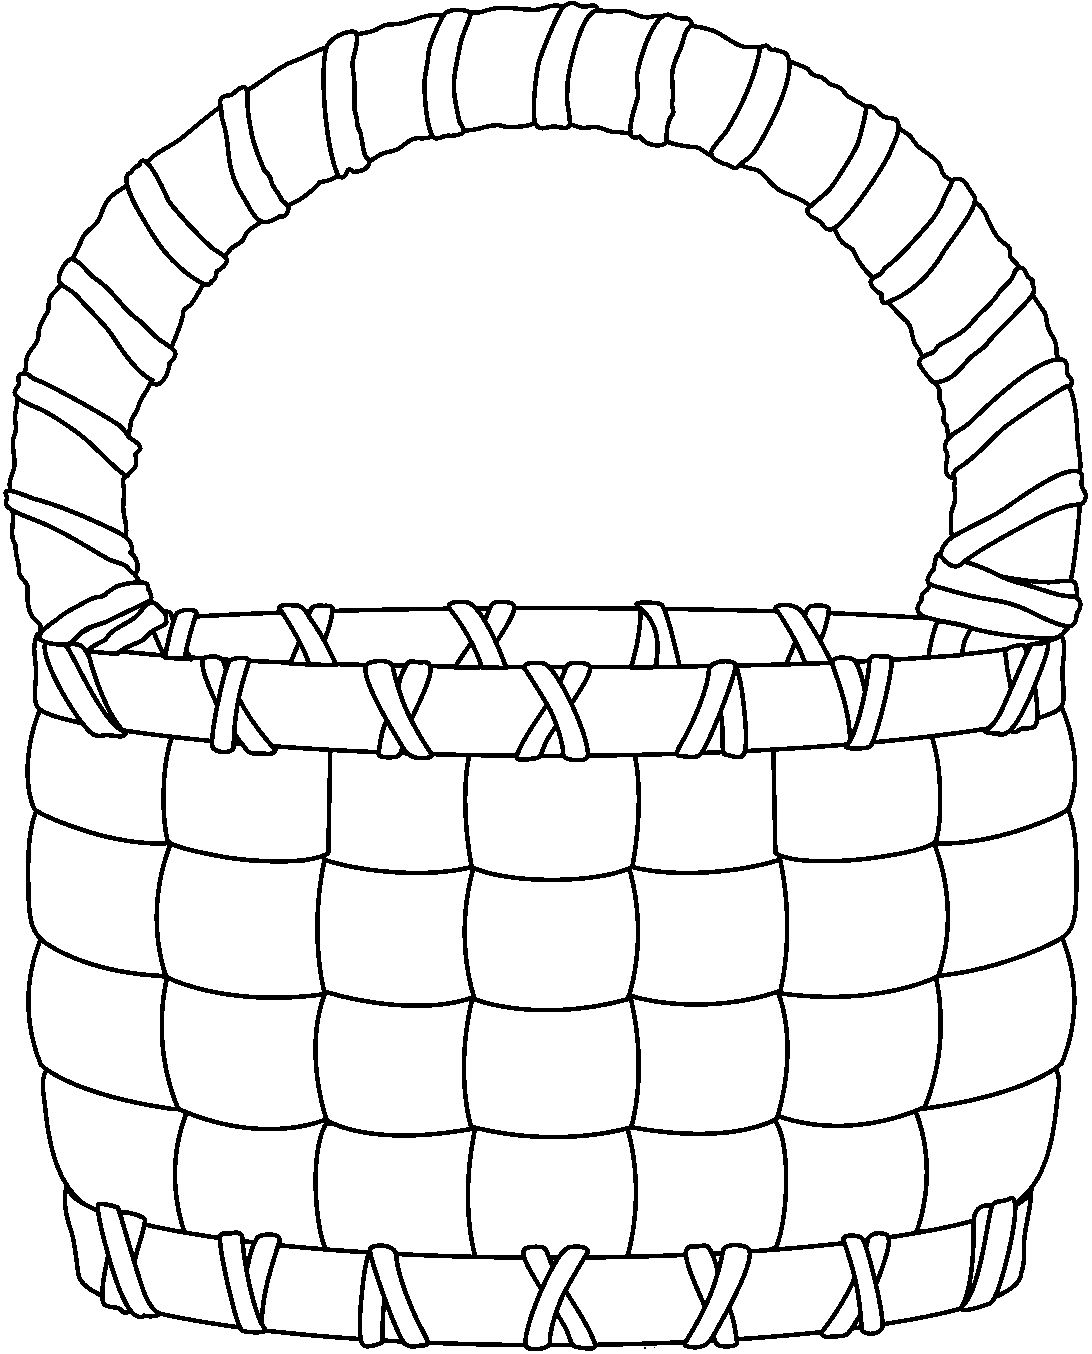 Basket Clip Art Black And White : Empty basket black clipart suggest